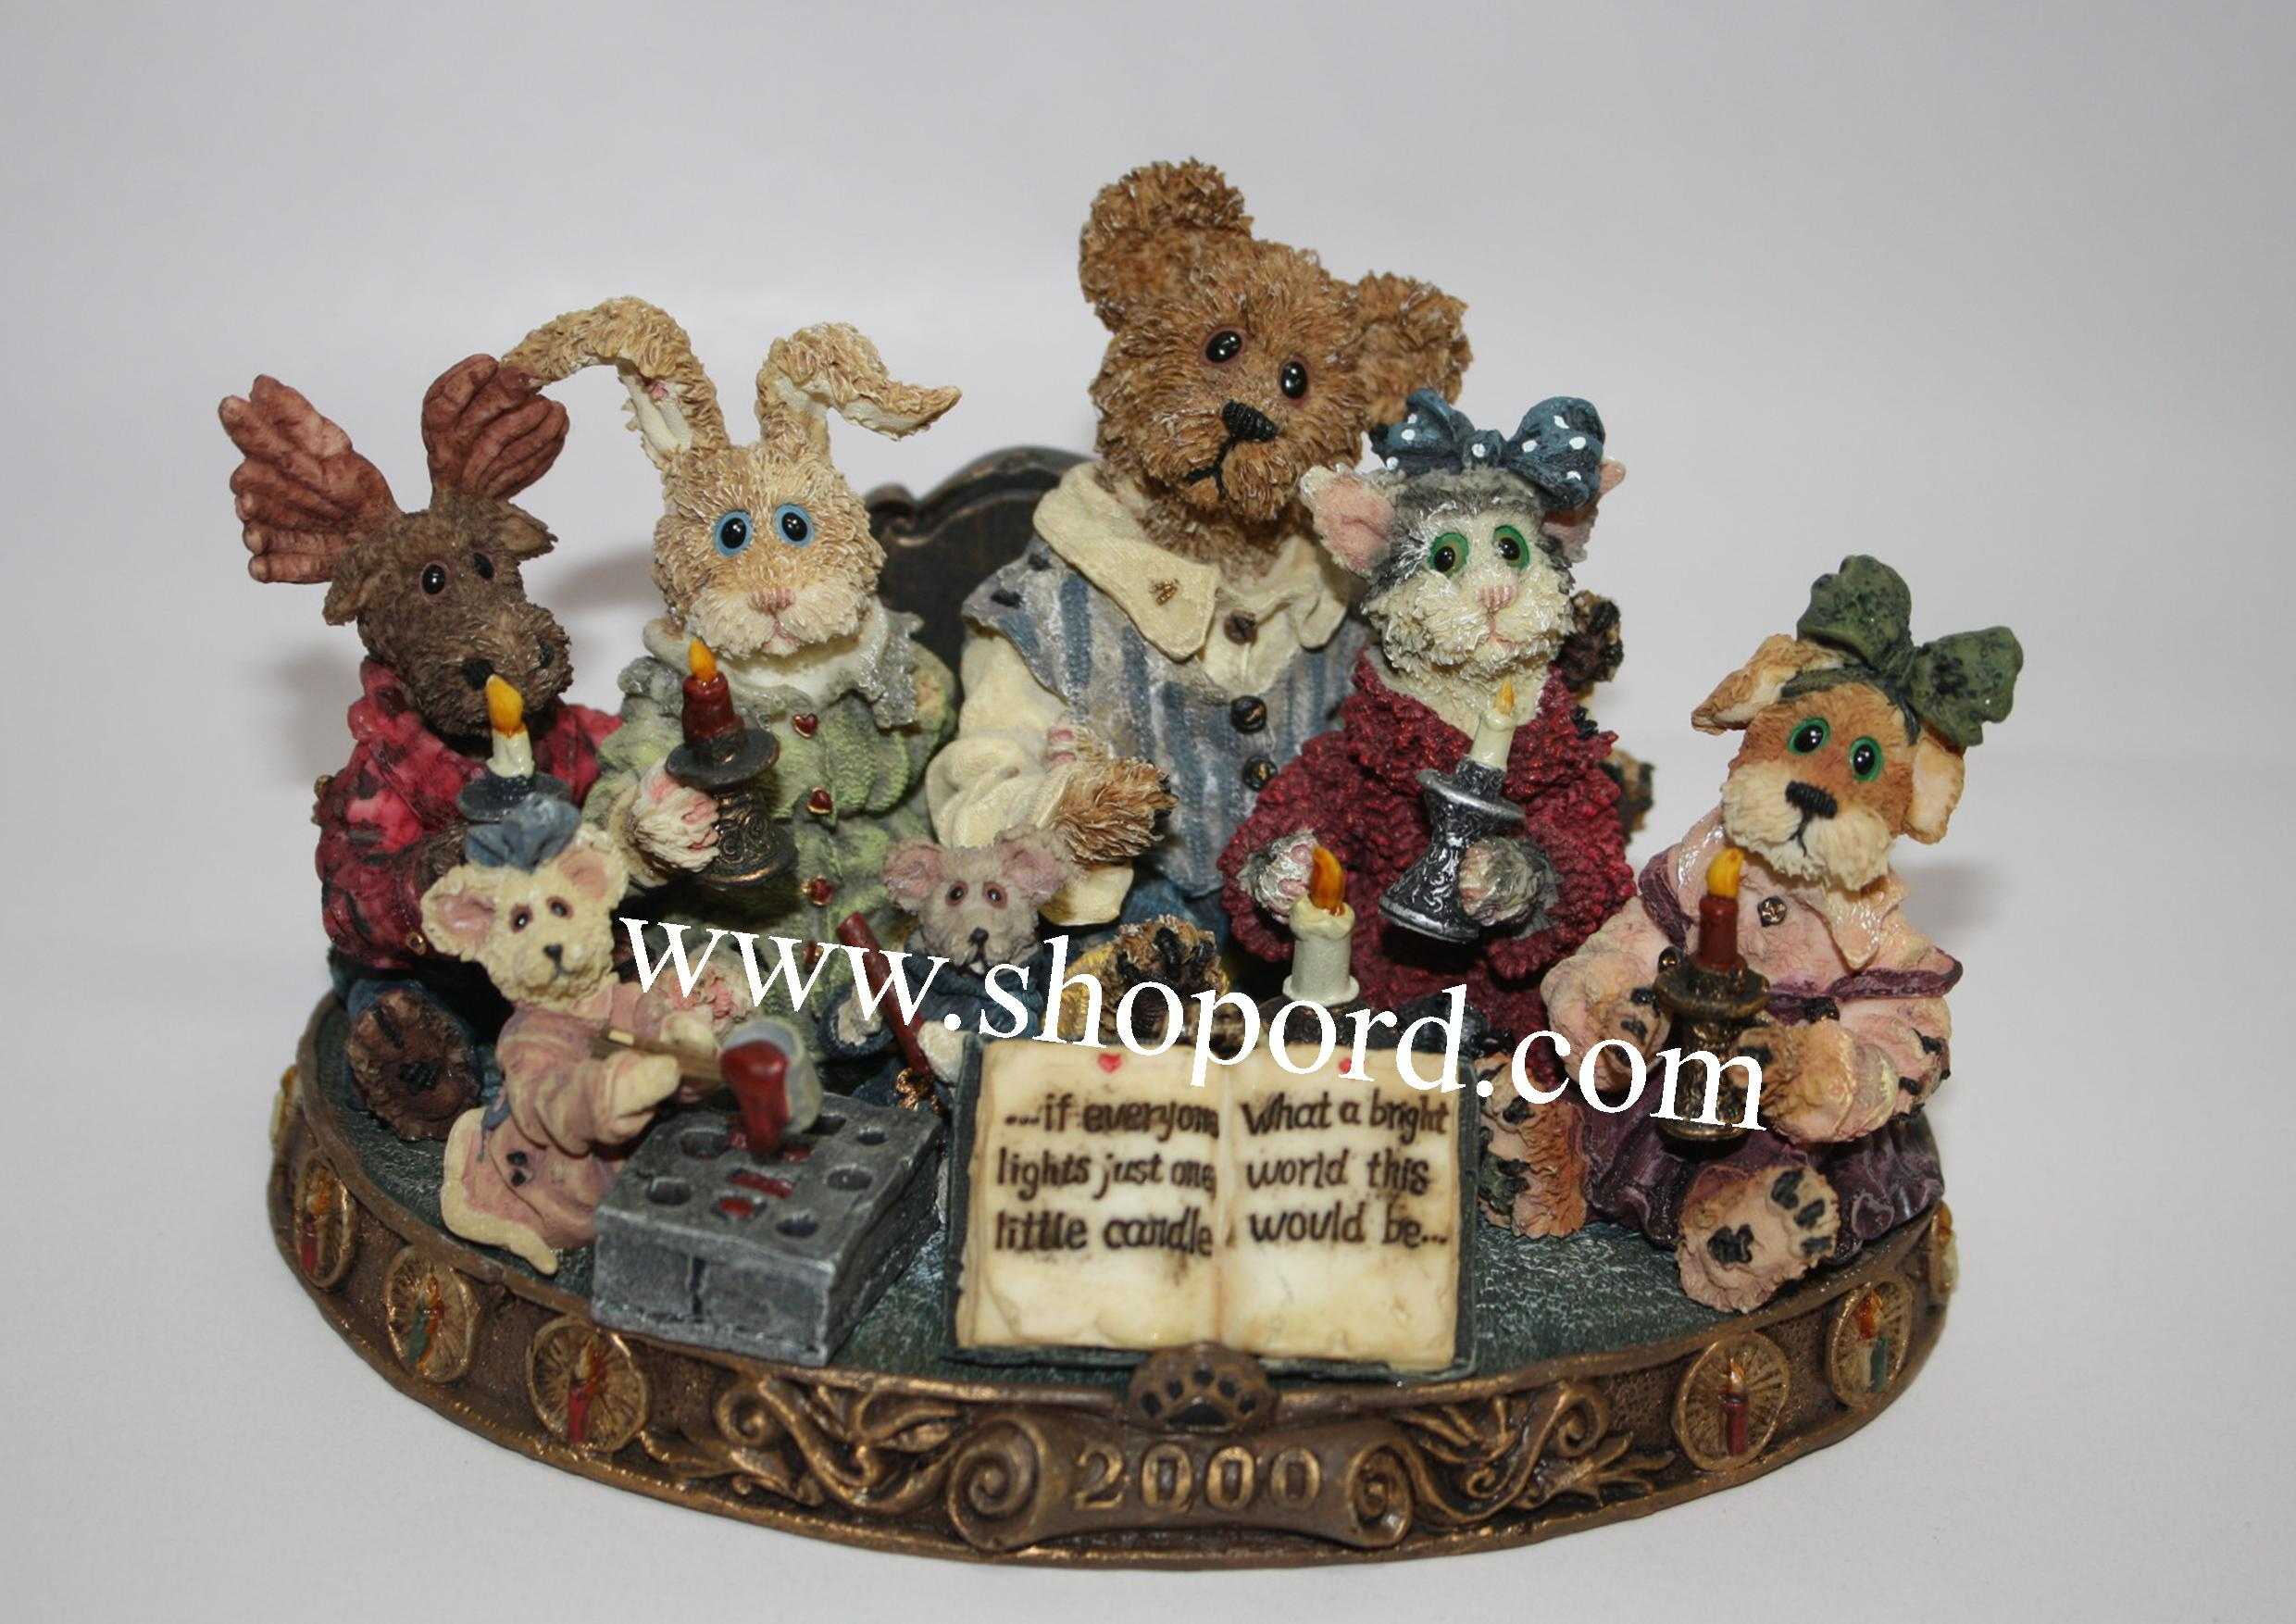 Boyds The Bearstone Collection - Chandler (bear), Mercy (moose), Felicity (rabbit), Constance (cat), Faith (dog), Y.K. & Tew (mice) Light A Candle For A Brighter World #227805